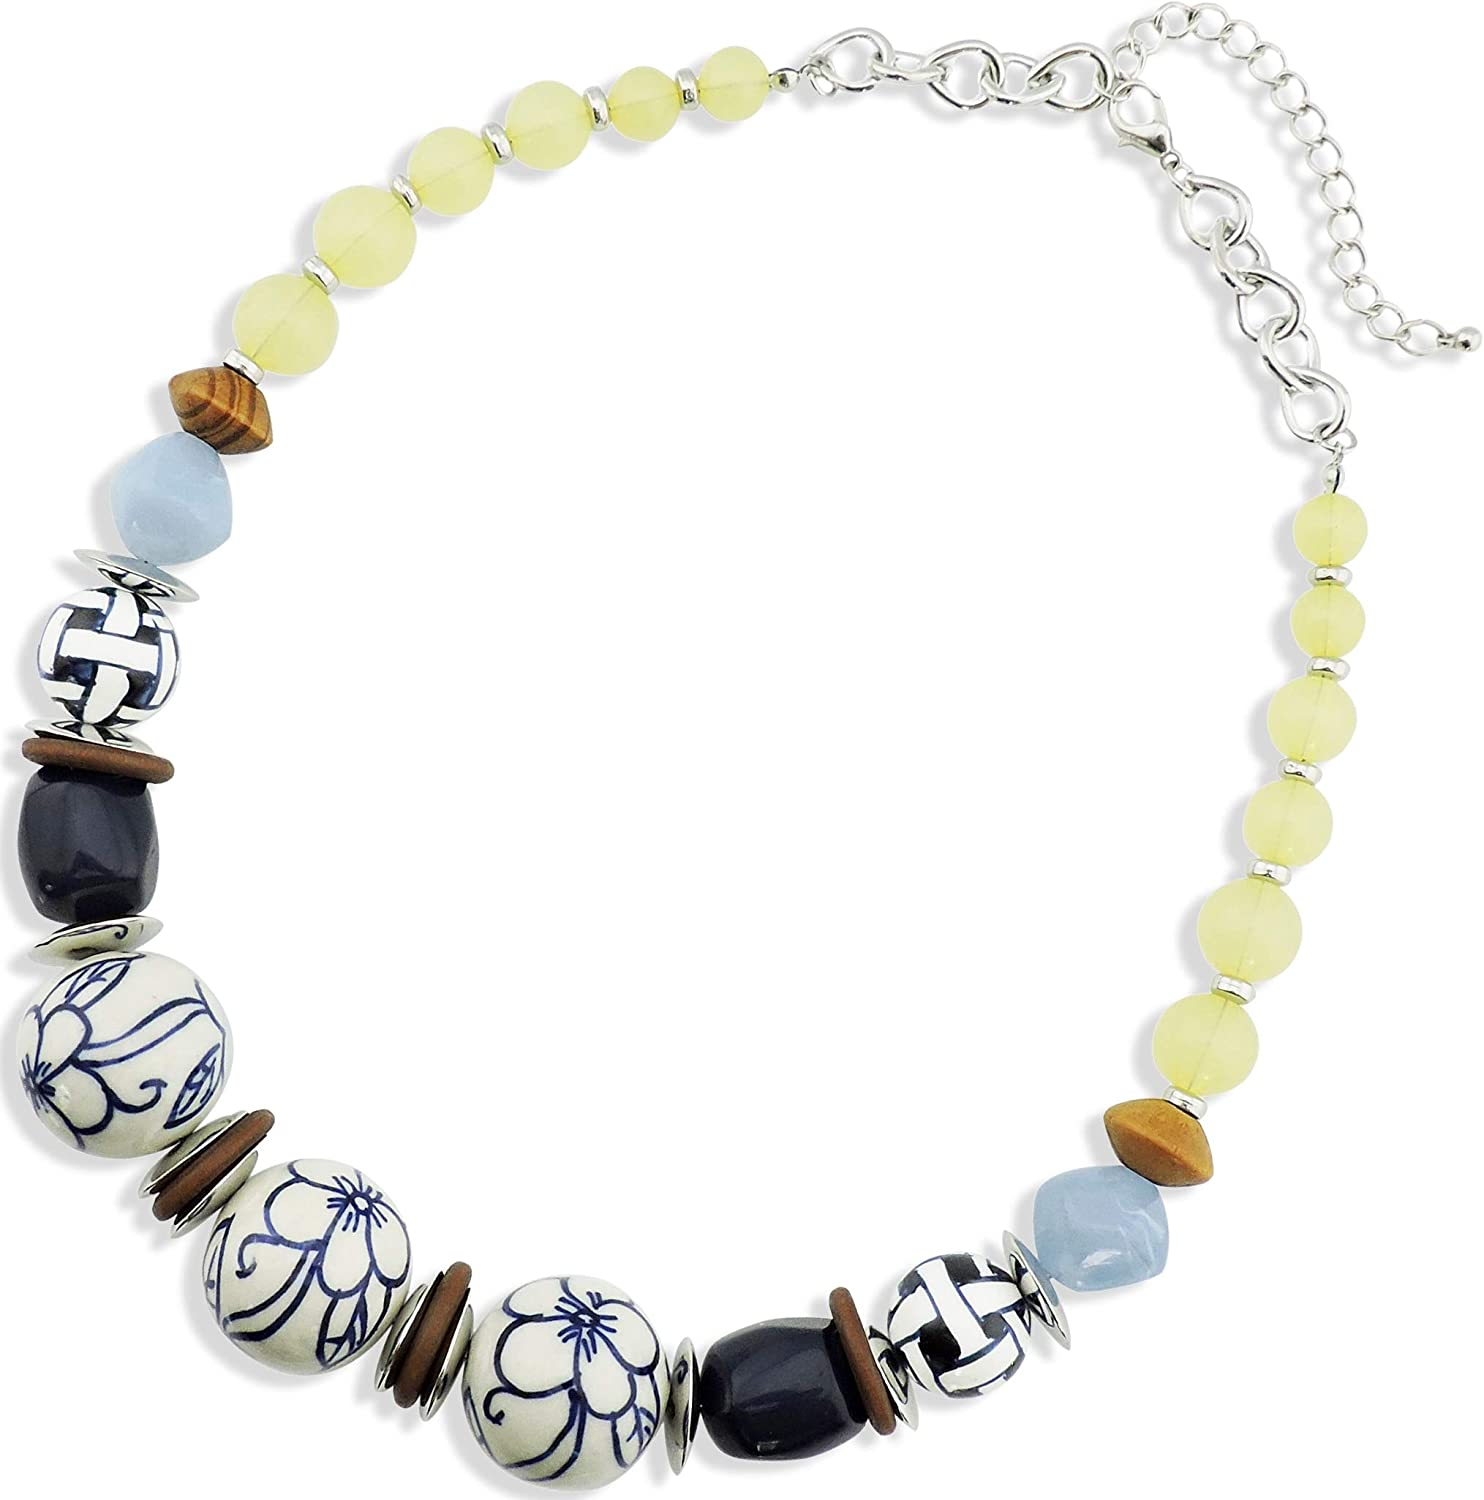 Firstmeet Ceramic Acrylic Wood Big Beads Chunky Collar Statement Necklace for Women